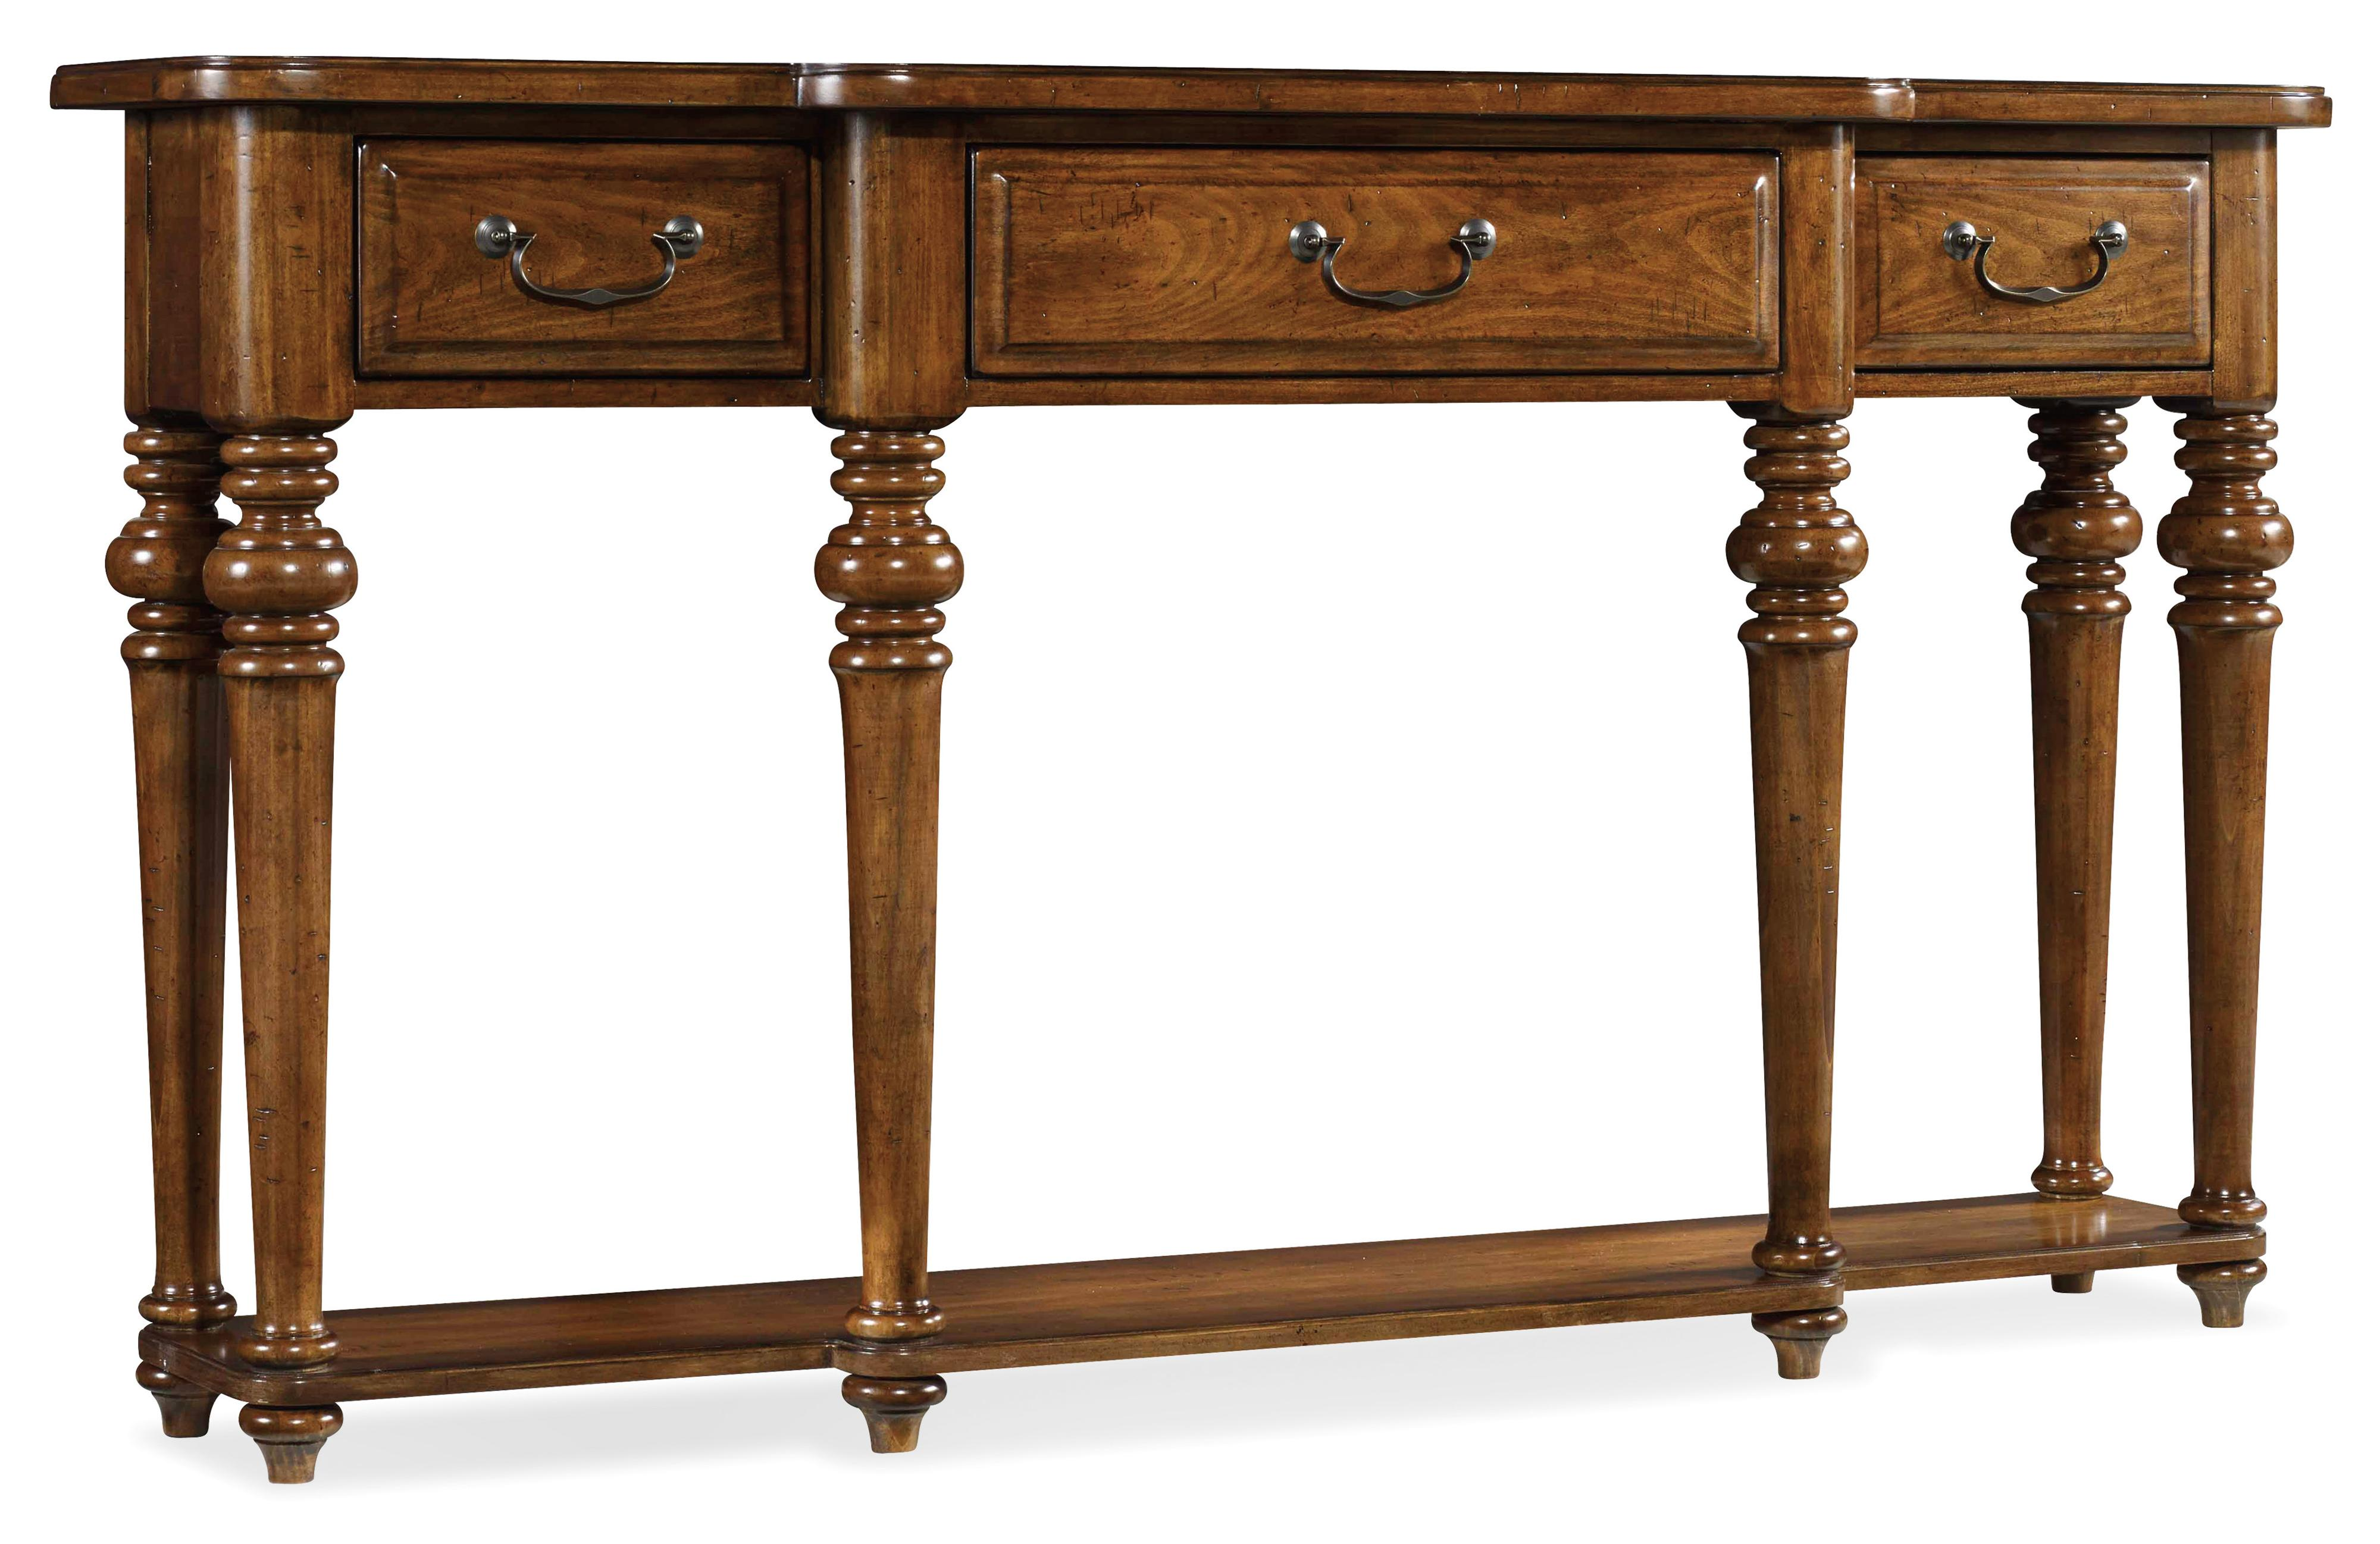 Hooker Furniture Tynecastle Sofa Table - Item Number: 5323-80151